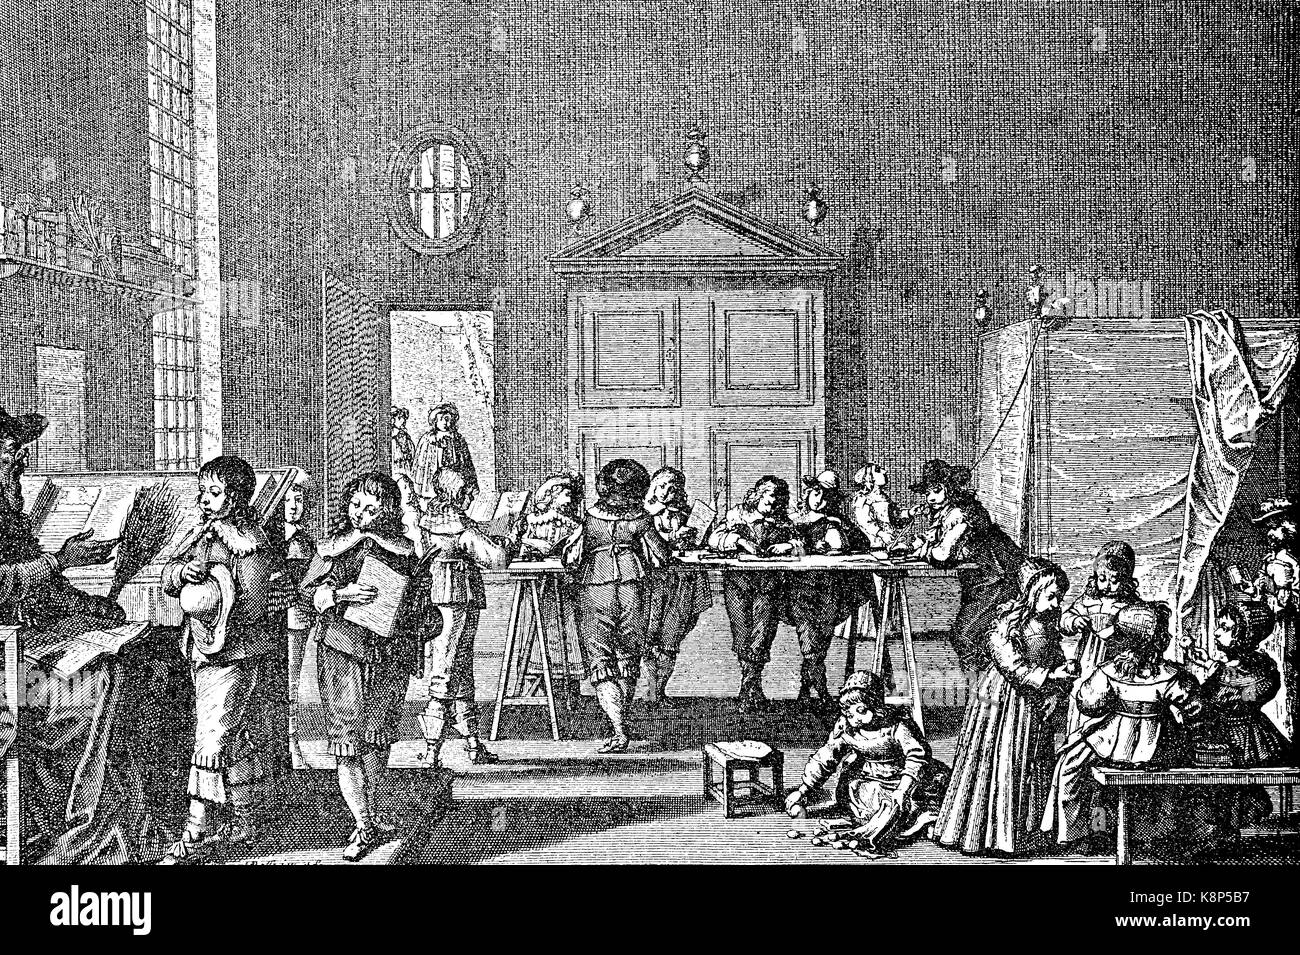 School of boys in the 17th century, Knabenschule im 17. Jahrhundert, digital improved reproduction of a woodcut, - Stock Image